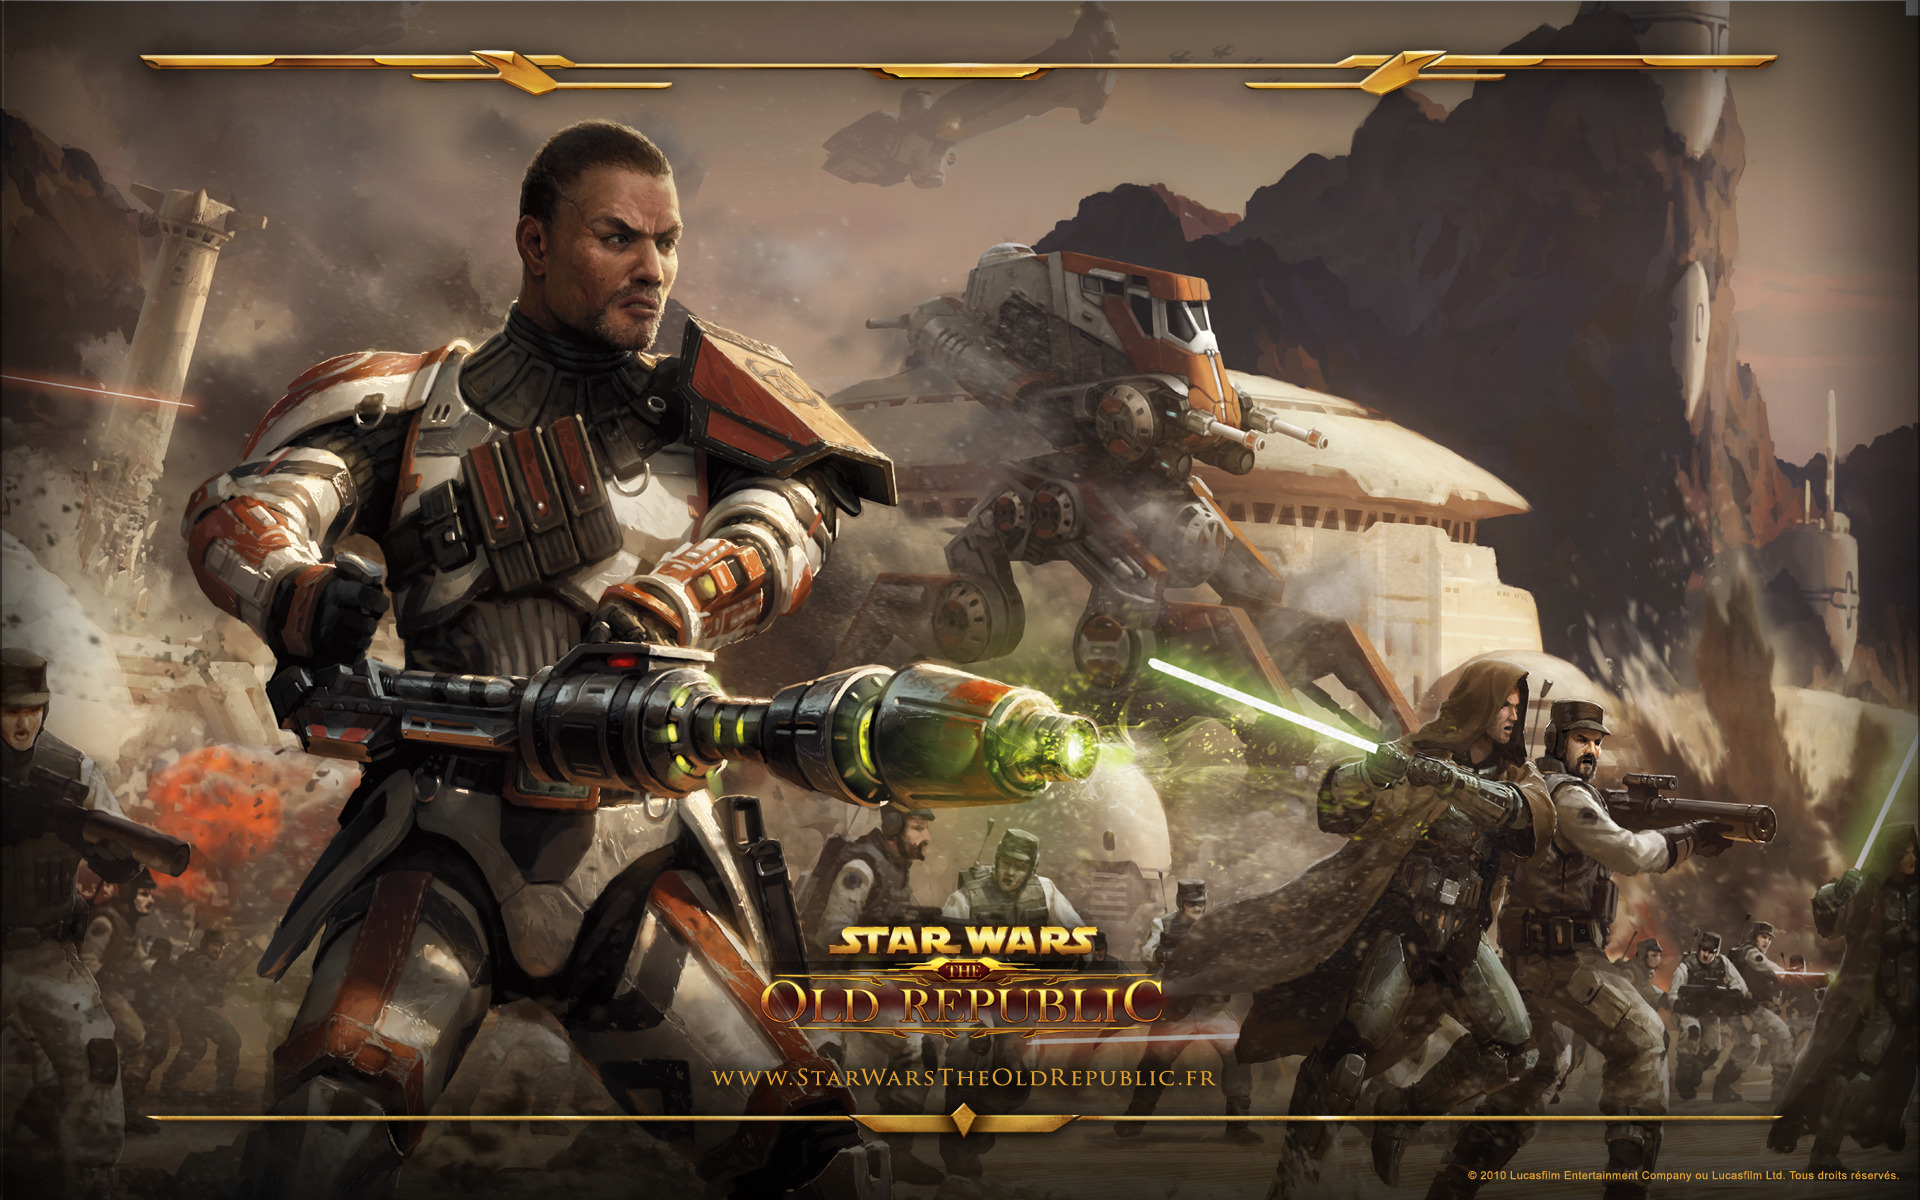 Wars images Star wars The Old Republic wallpaper photos 26970328 1920x1200